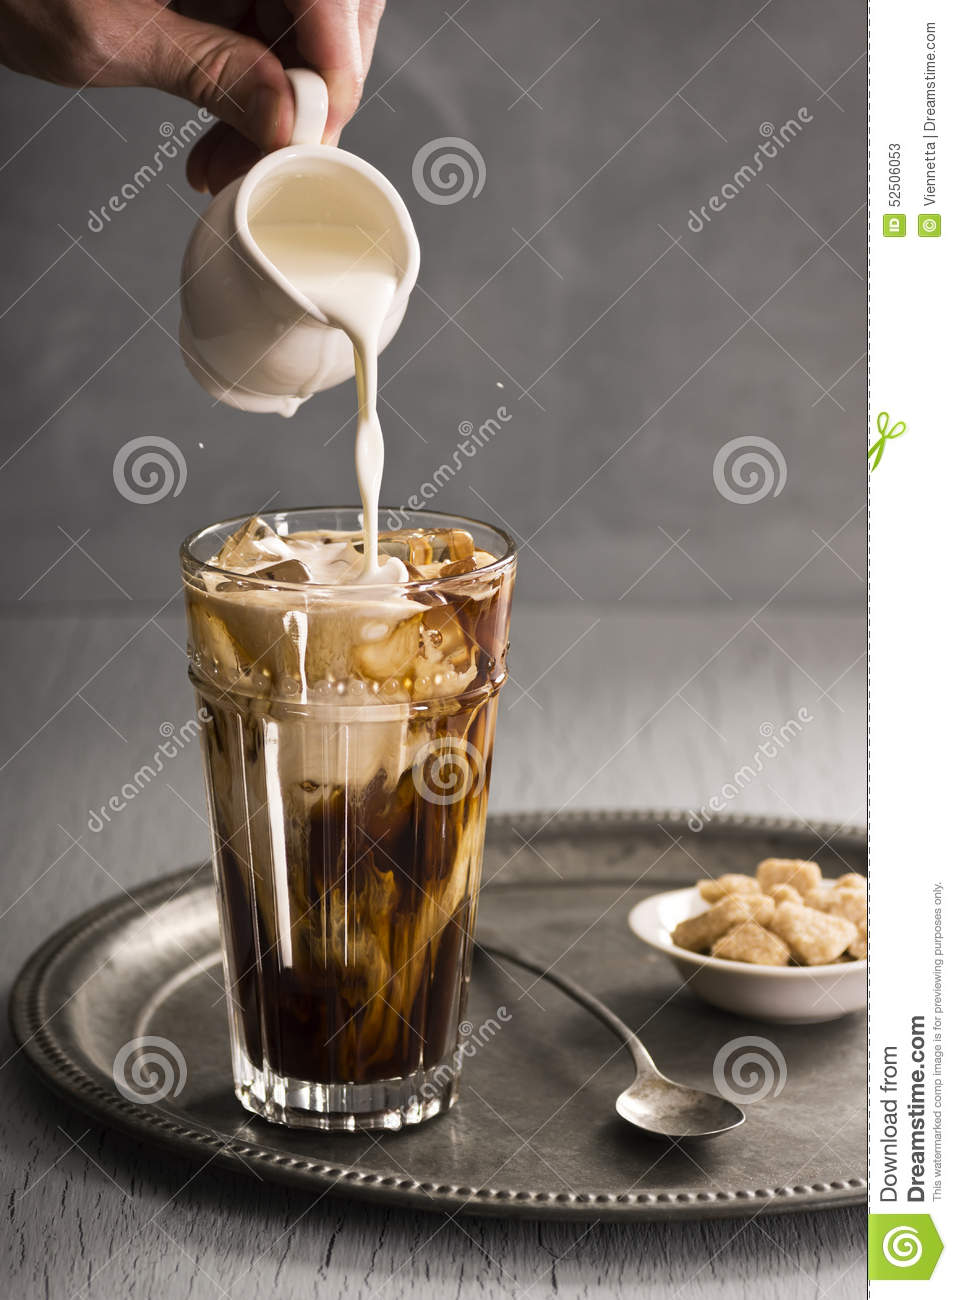 Mans Hand Pours Milk Into Glass Of Iced Coffee Stock Image ...